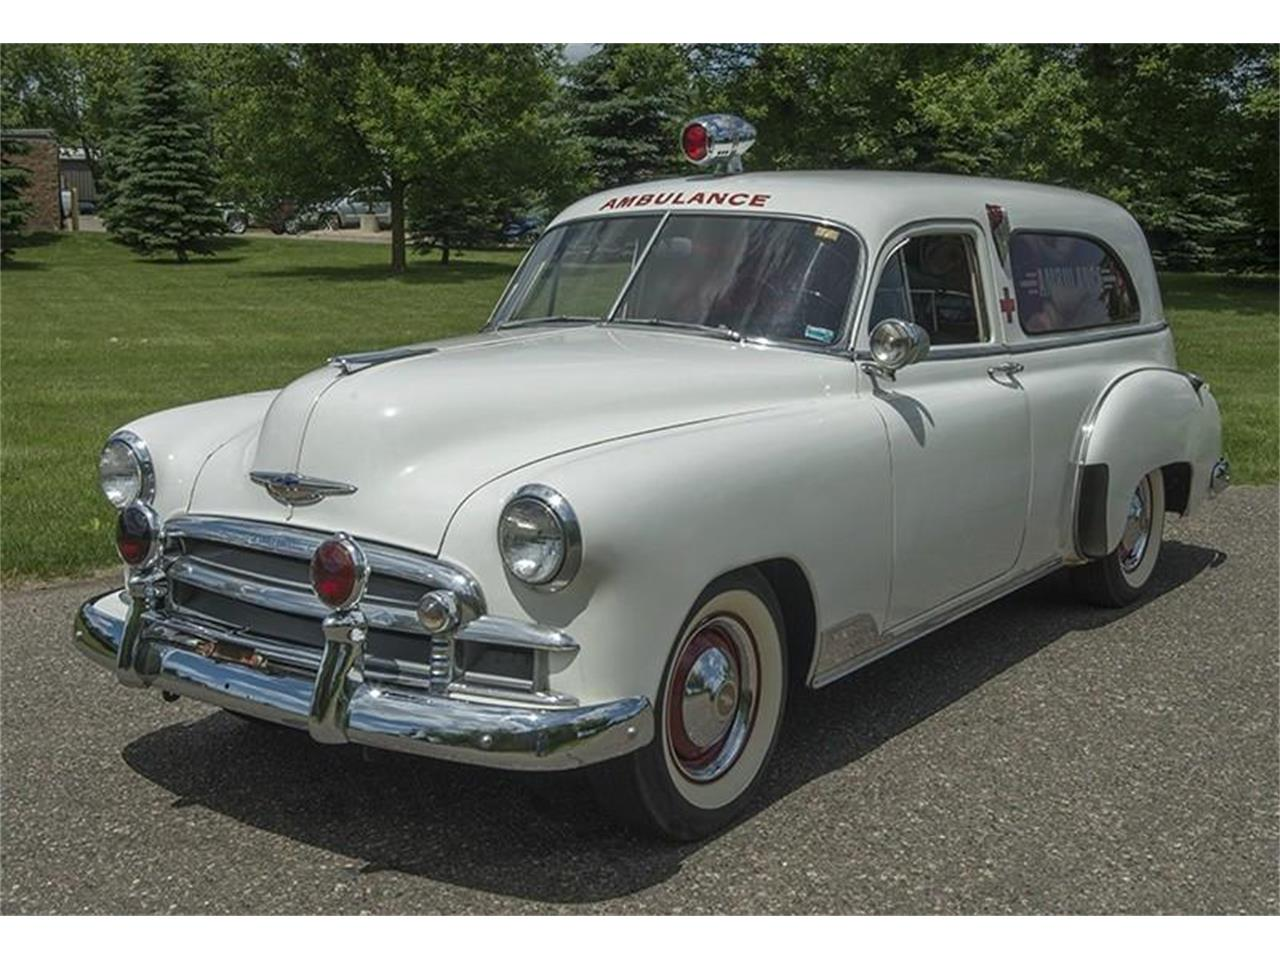 For Sale: 1950 Chevrolet Ambulance in Roger, Minnesota